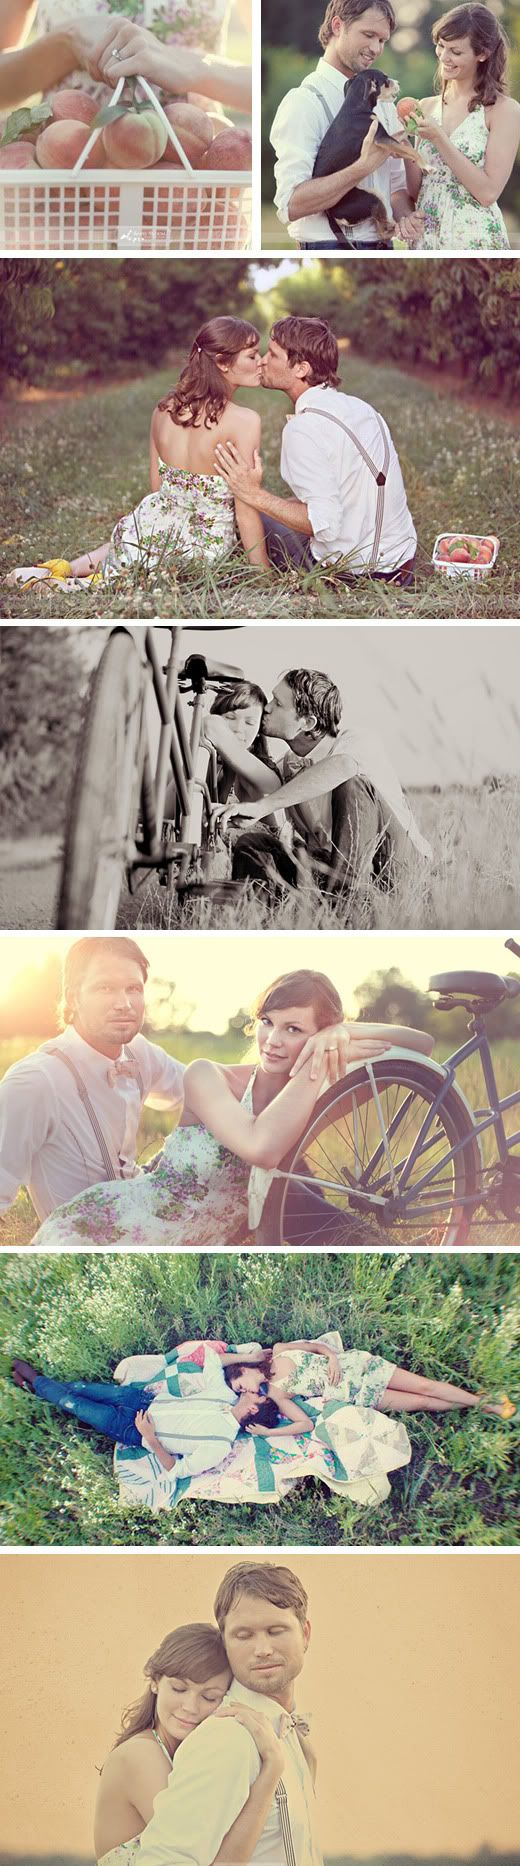 Vintage Engagement Photoshoot  except in an apple orchard!!